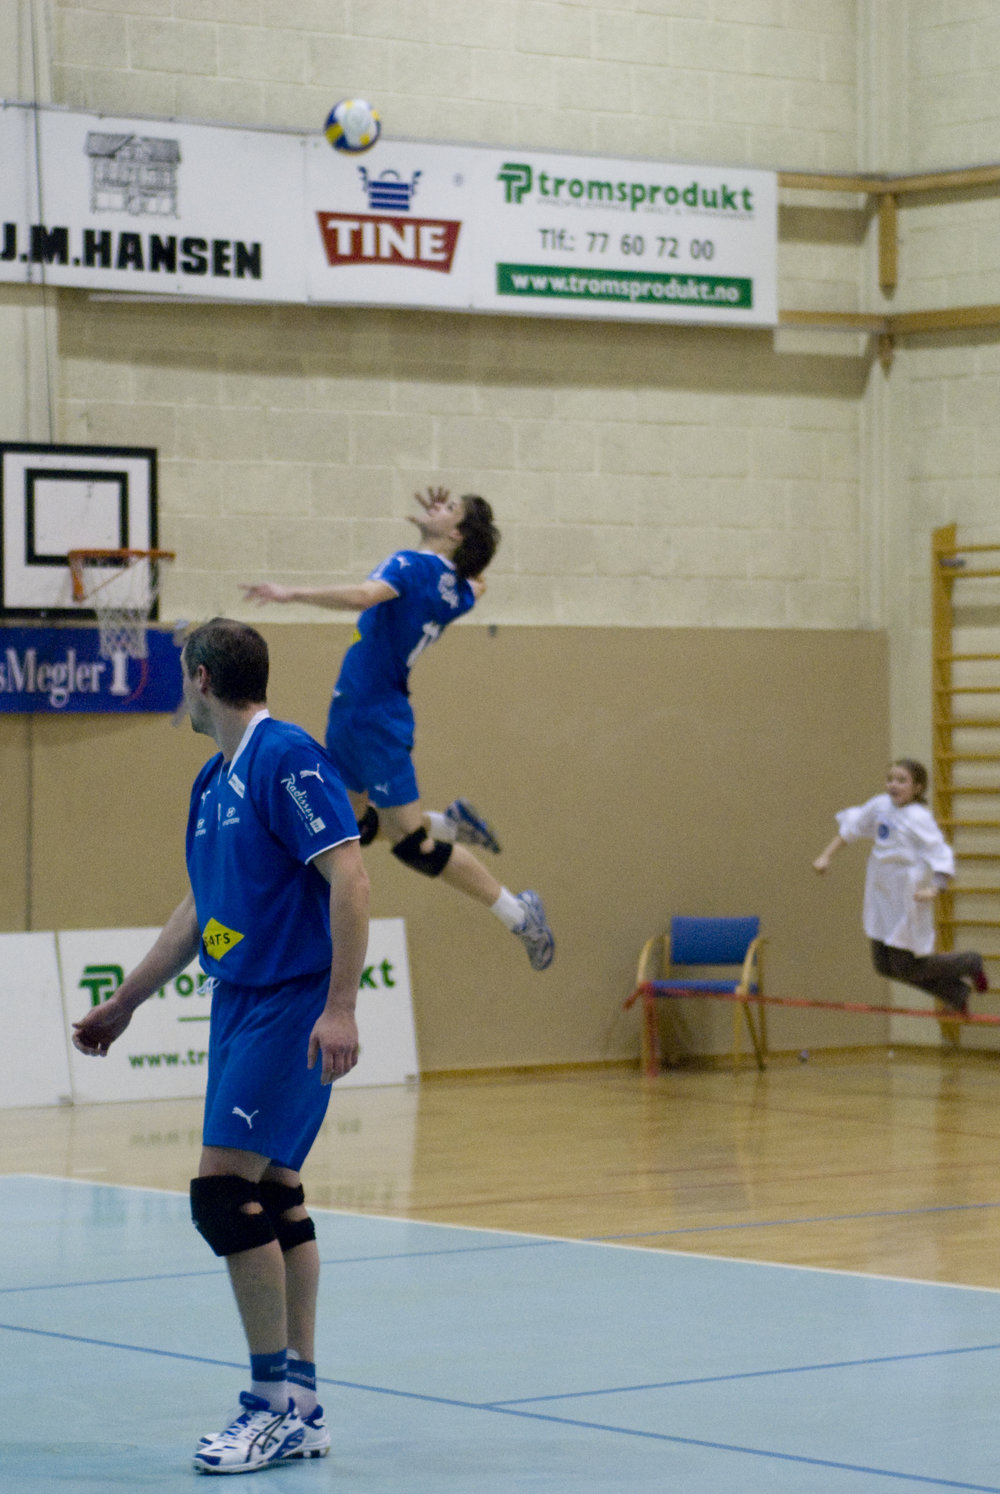 Me serving when I played in Tromsø. Nikon D200